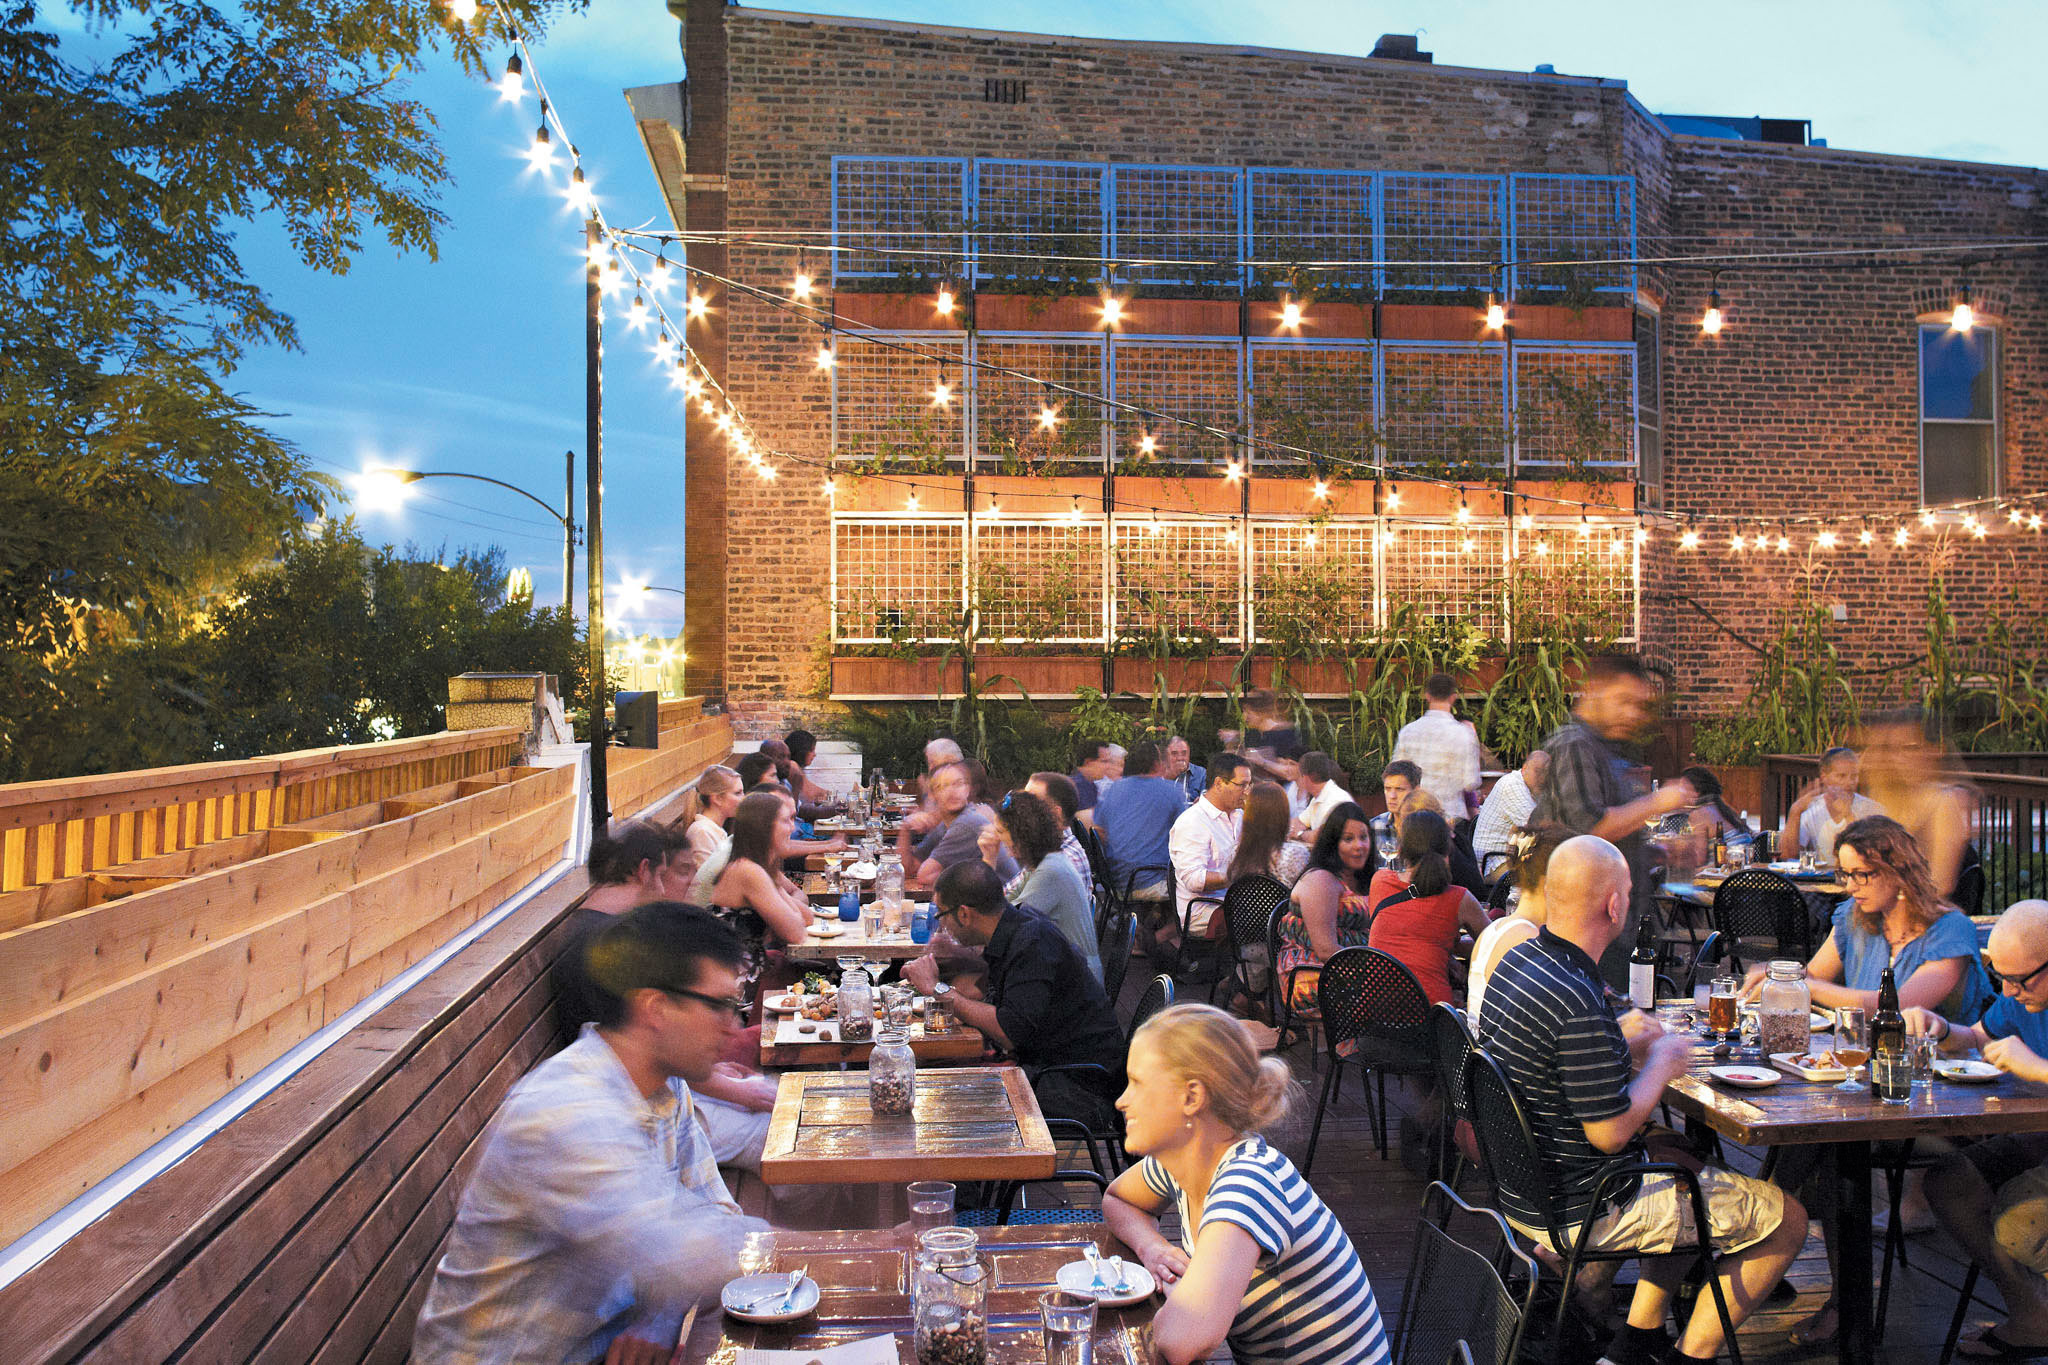 Best Rooftop Bars In Chicago For Outdoor Drinking And City